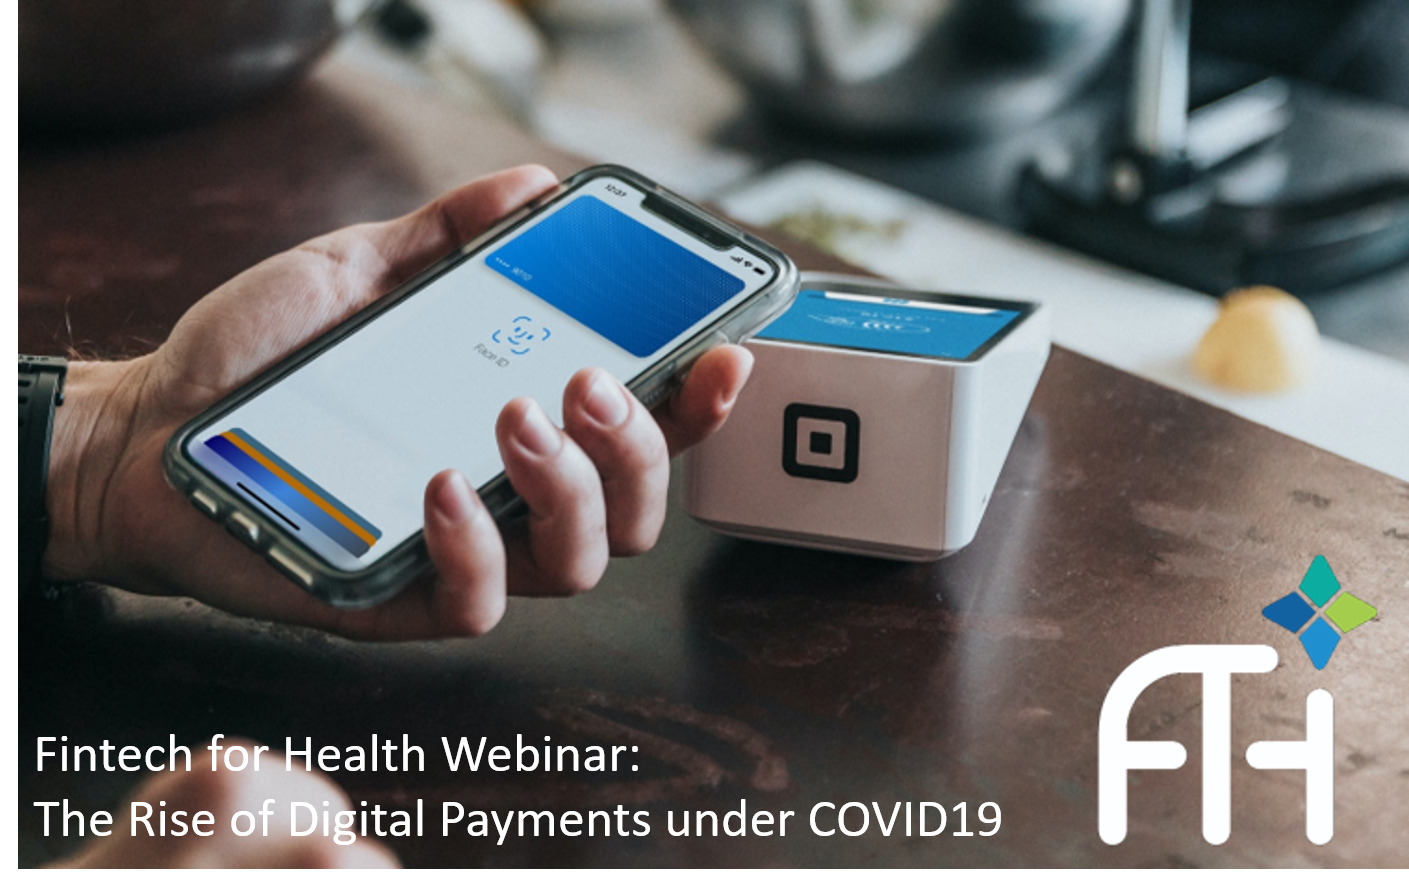 Fintech for Health Webinar: The Rise of Digital Payments under COVID19